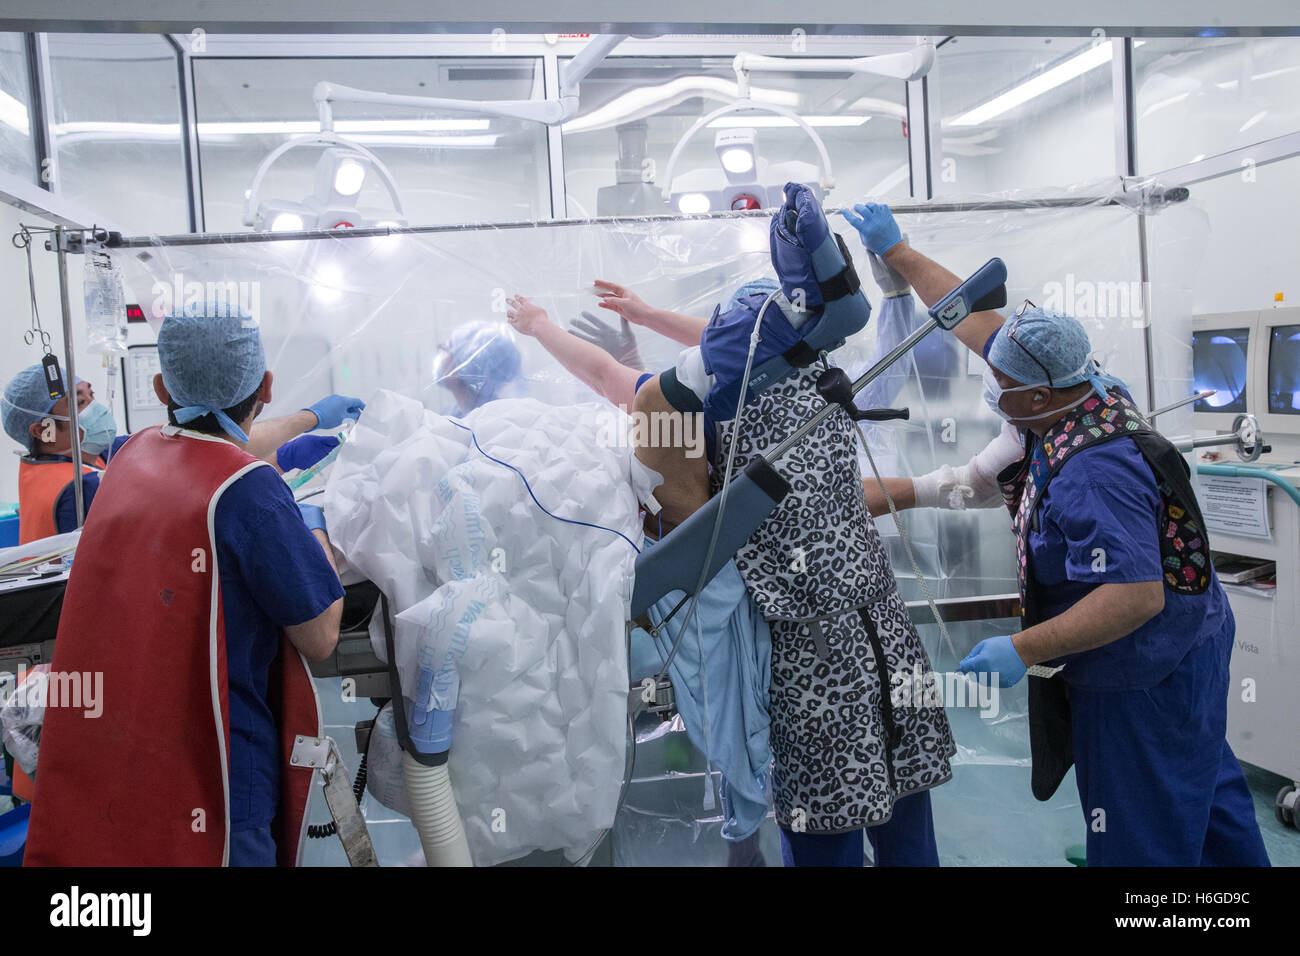 Hospital staff in an operating theatre preparing a patient for a knee operation - Stock Image